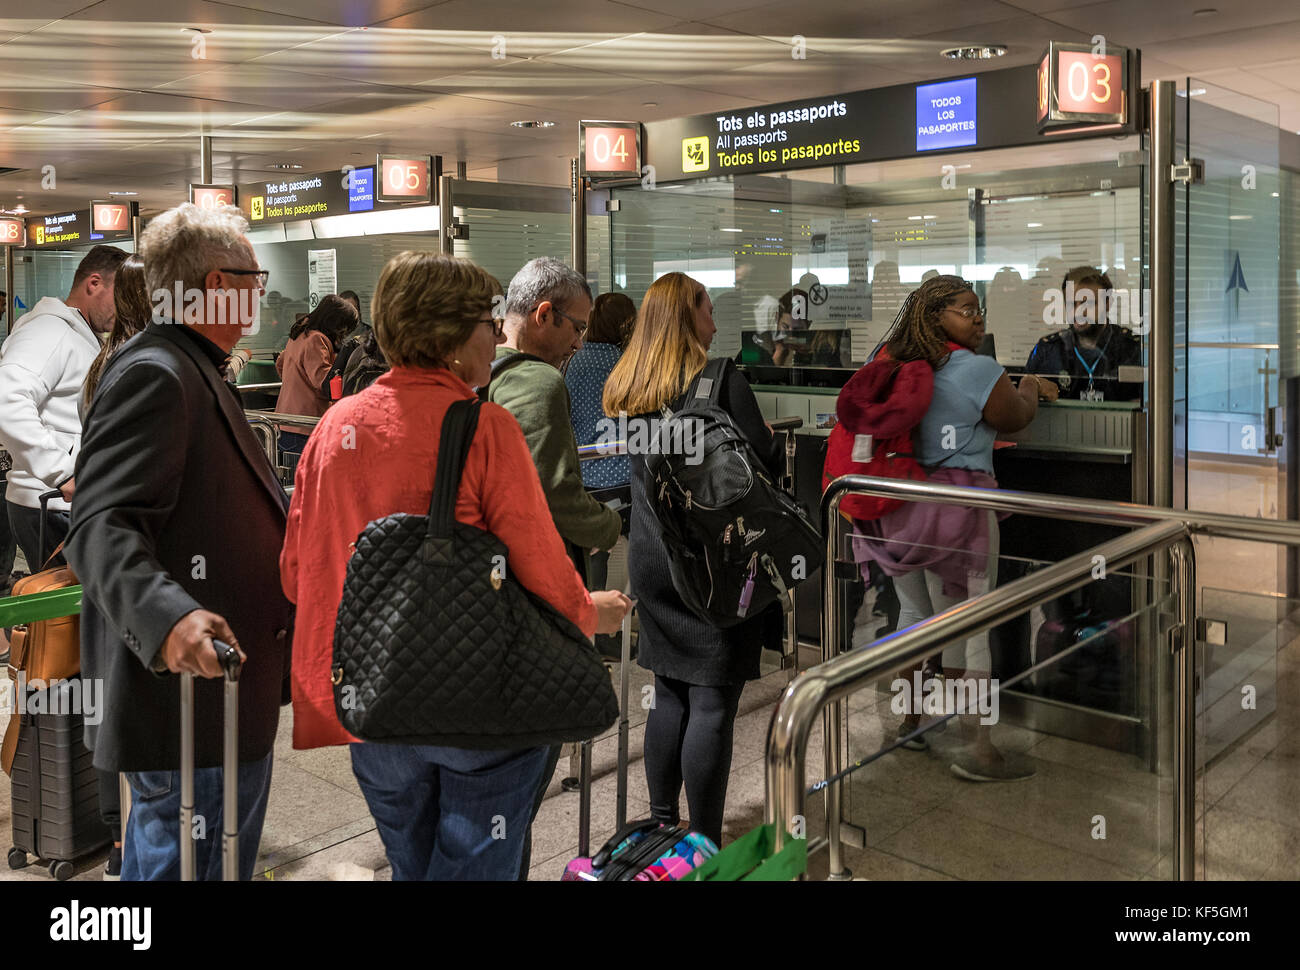 Customs security check at Barcelona airport, Spain. - Stock Image